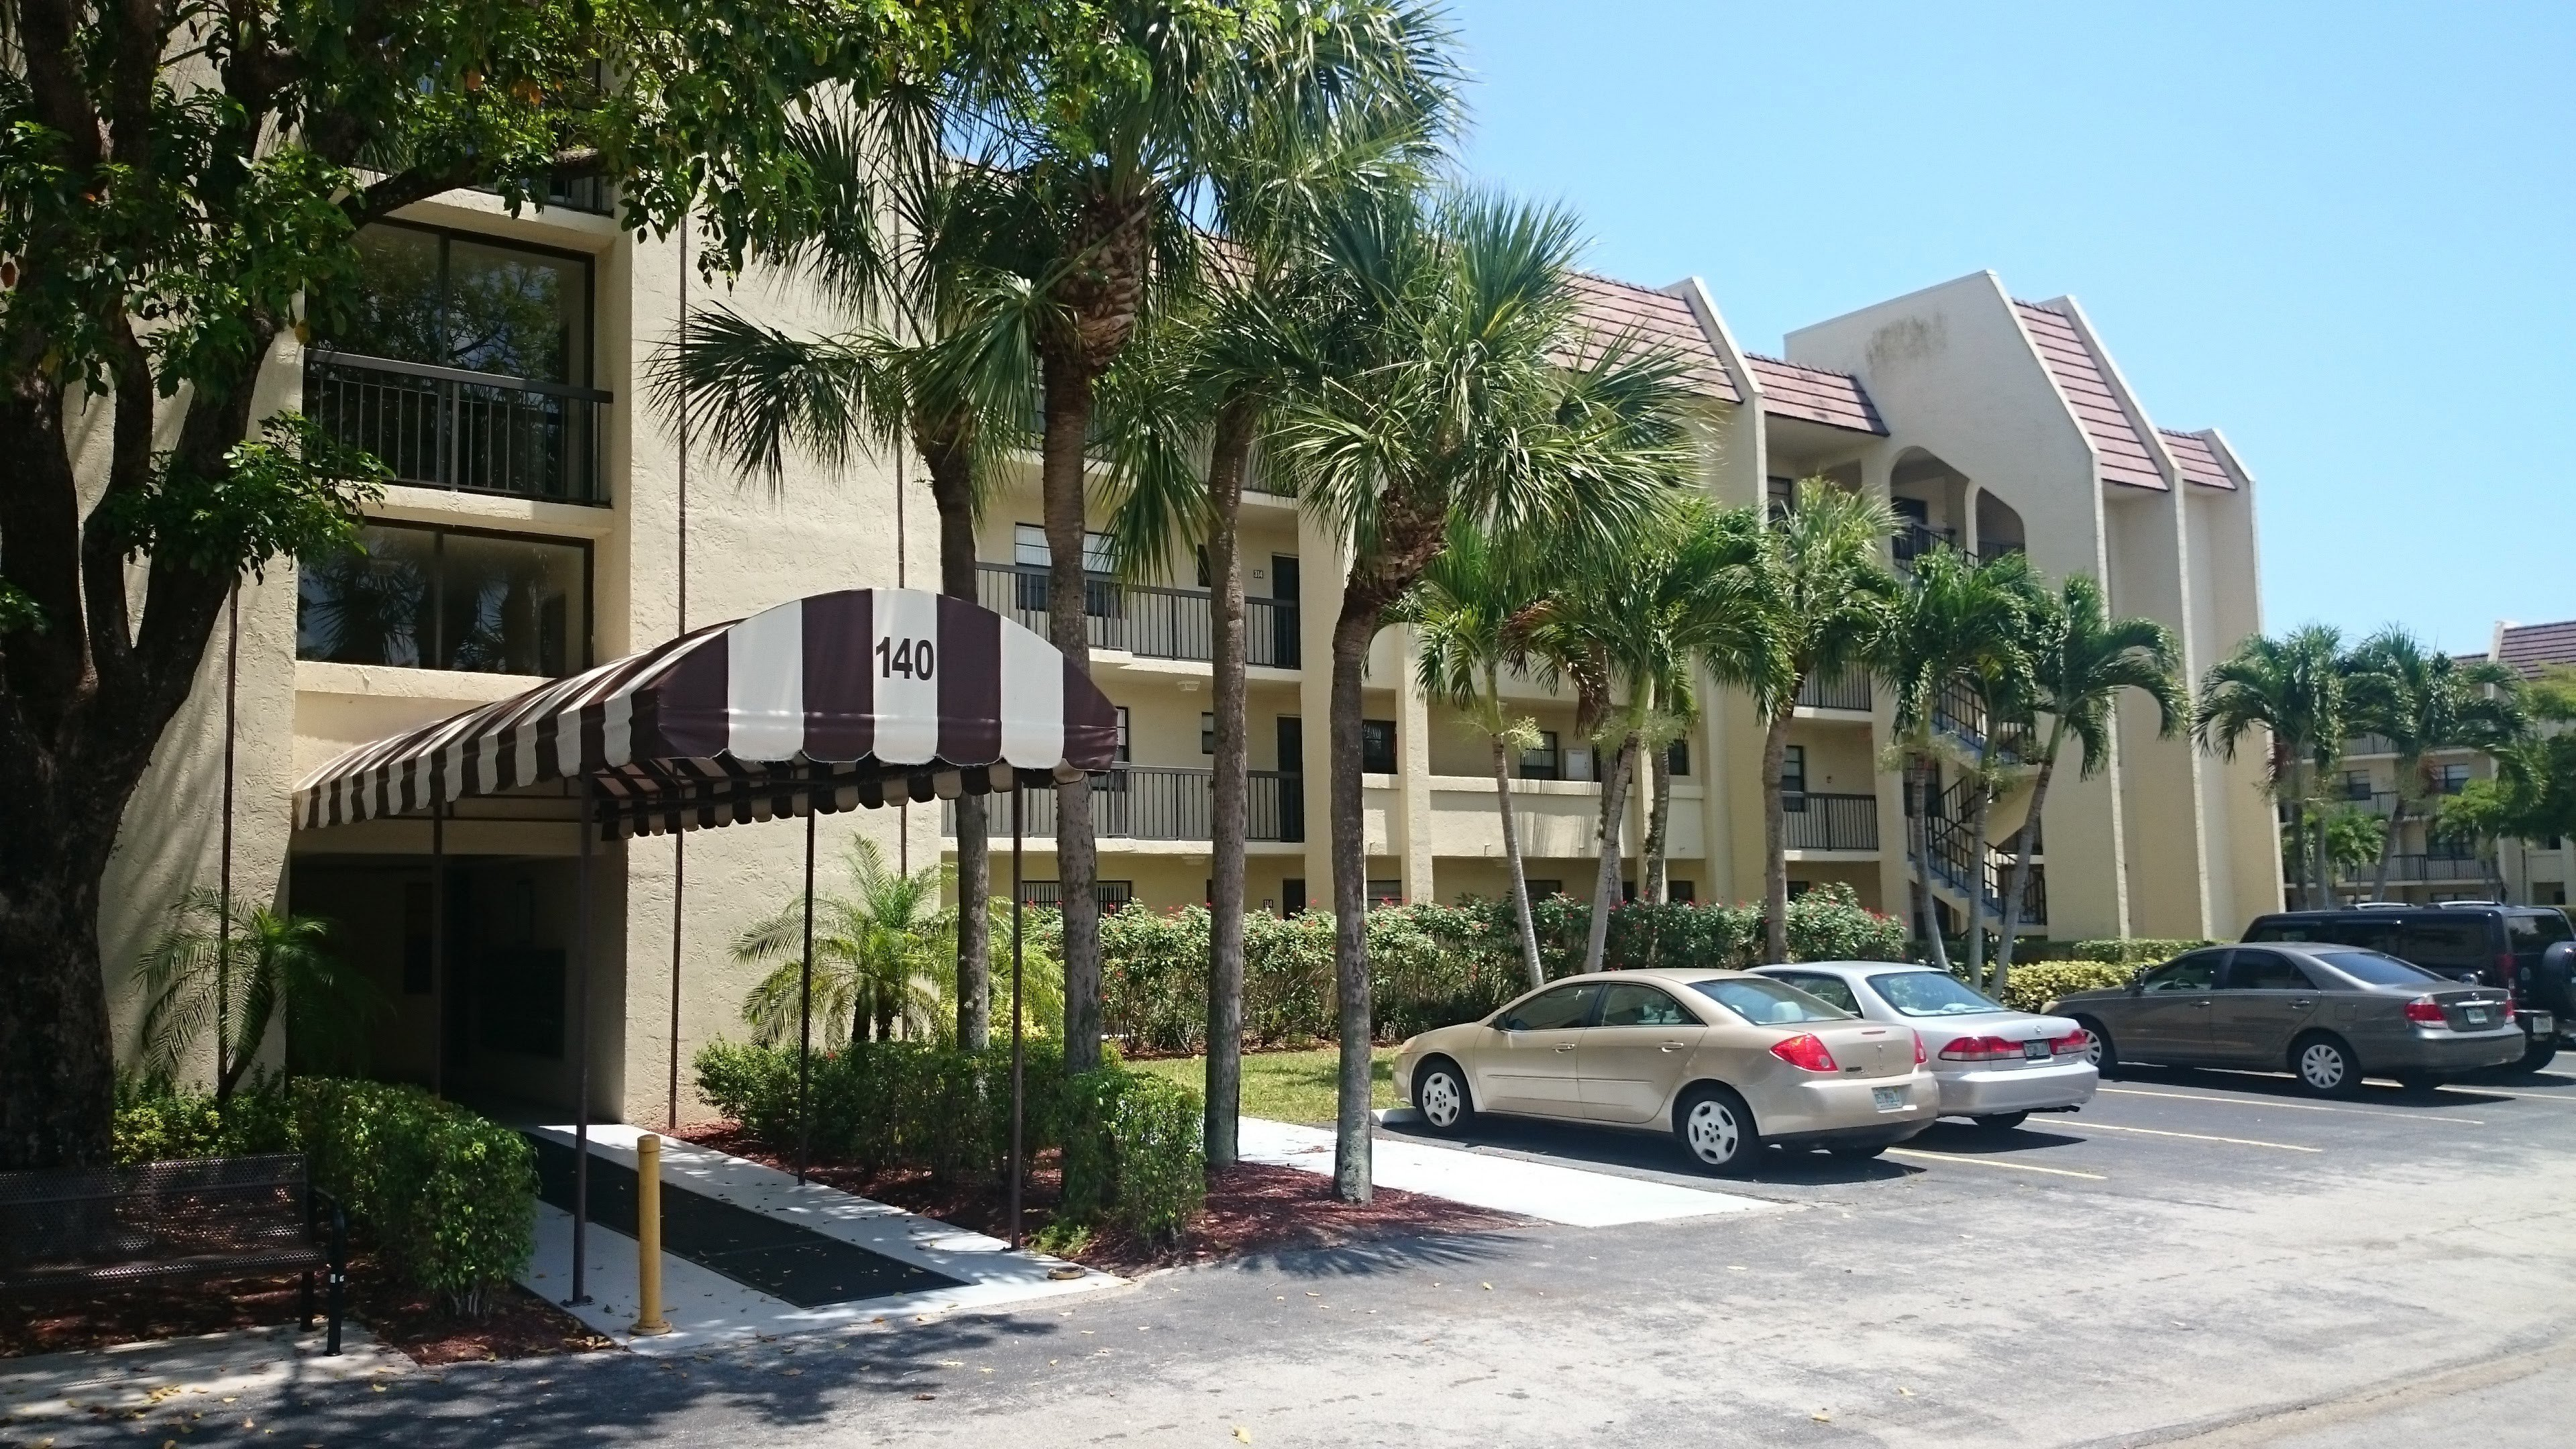 Best Lake Nancy Lane 313 West Palm Beach Fl 33411 2 Bedroom Apartment For Rent For 1 100 Month With Pictures